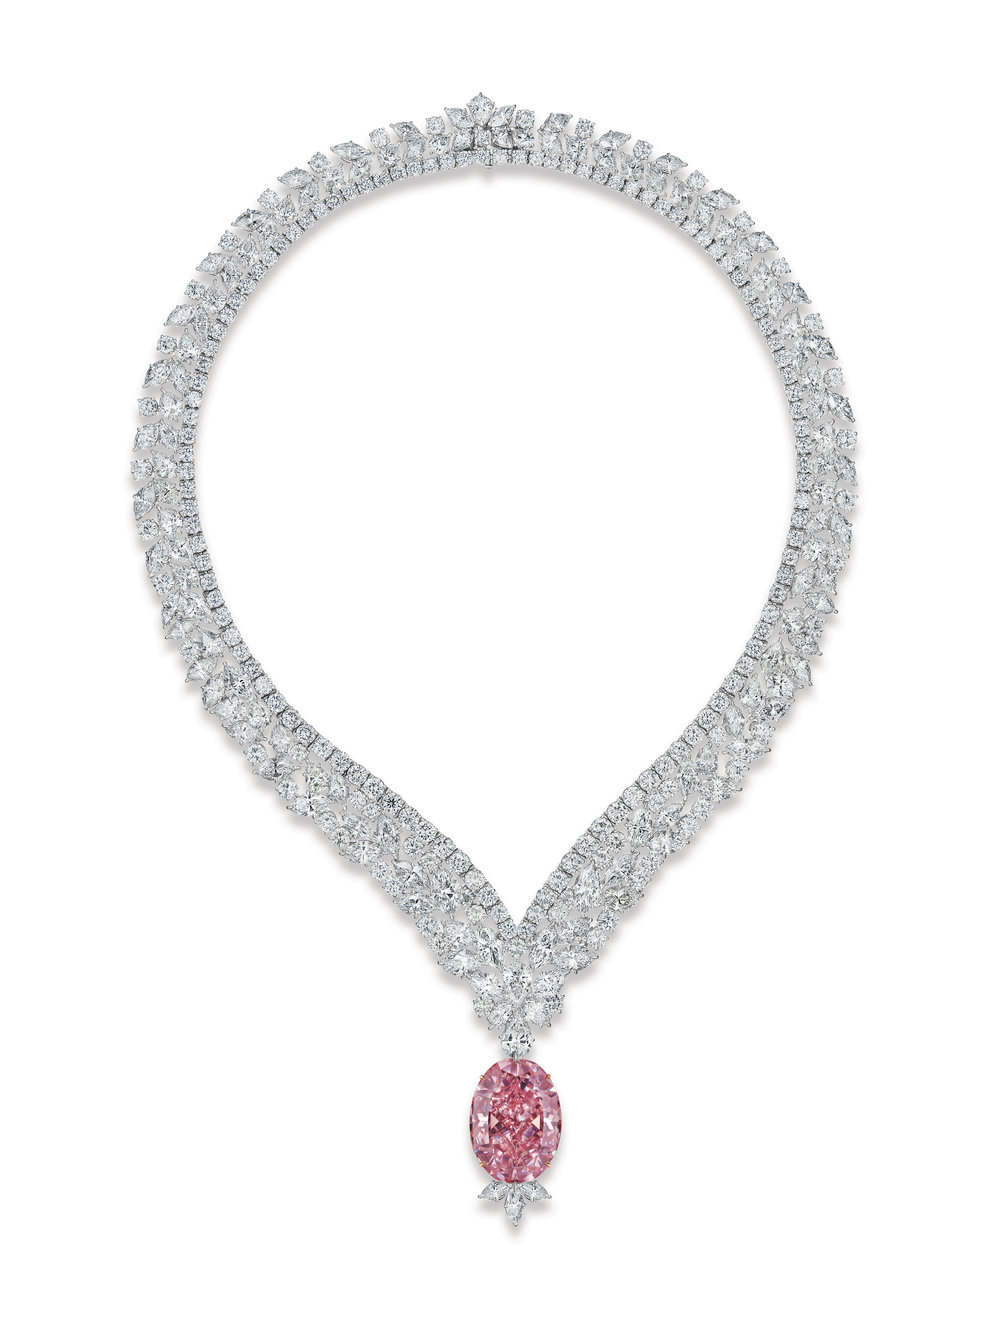 The Juliet Pink Diamond - set in a magnificent necklace with marquise, pear and round-cut shape white diamonds